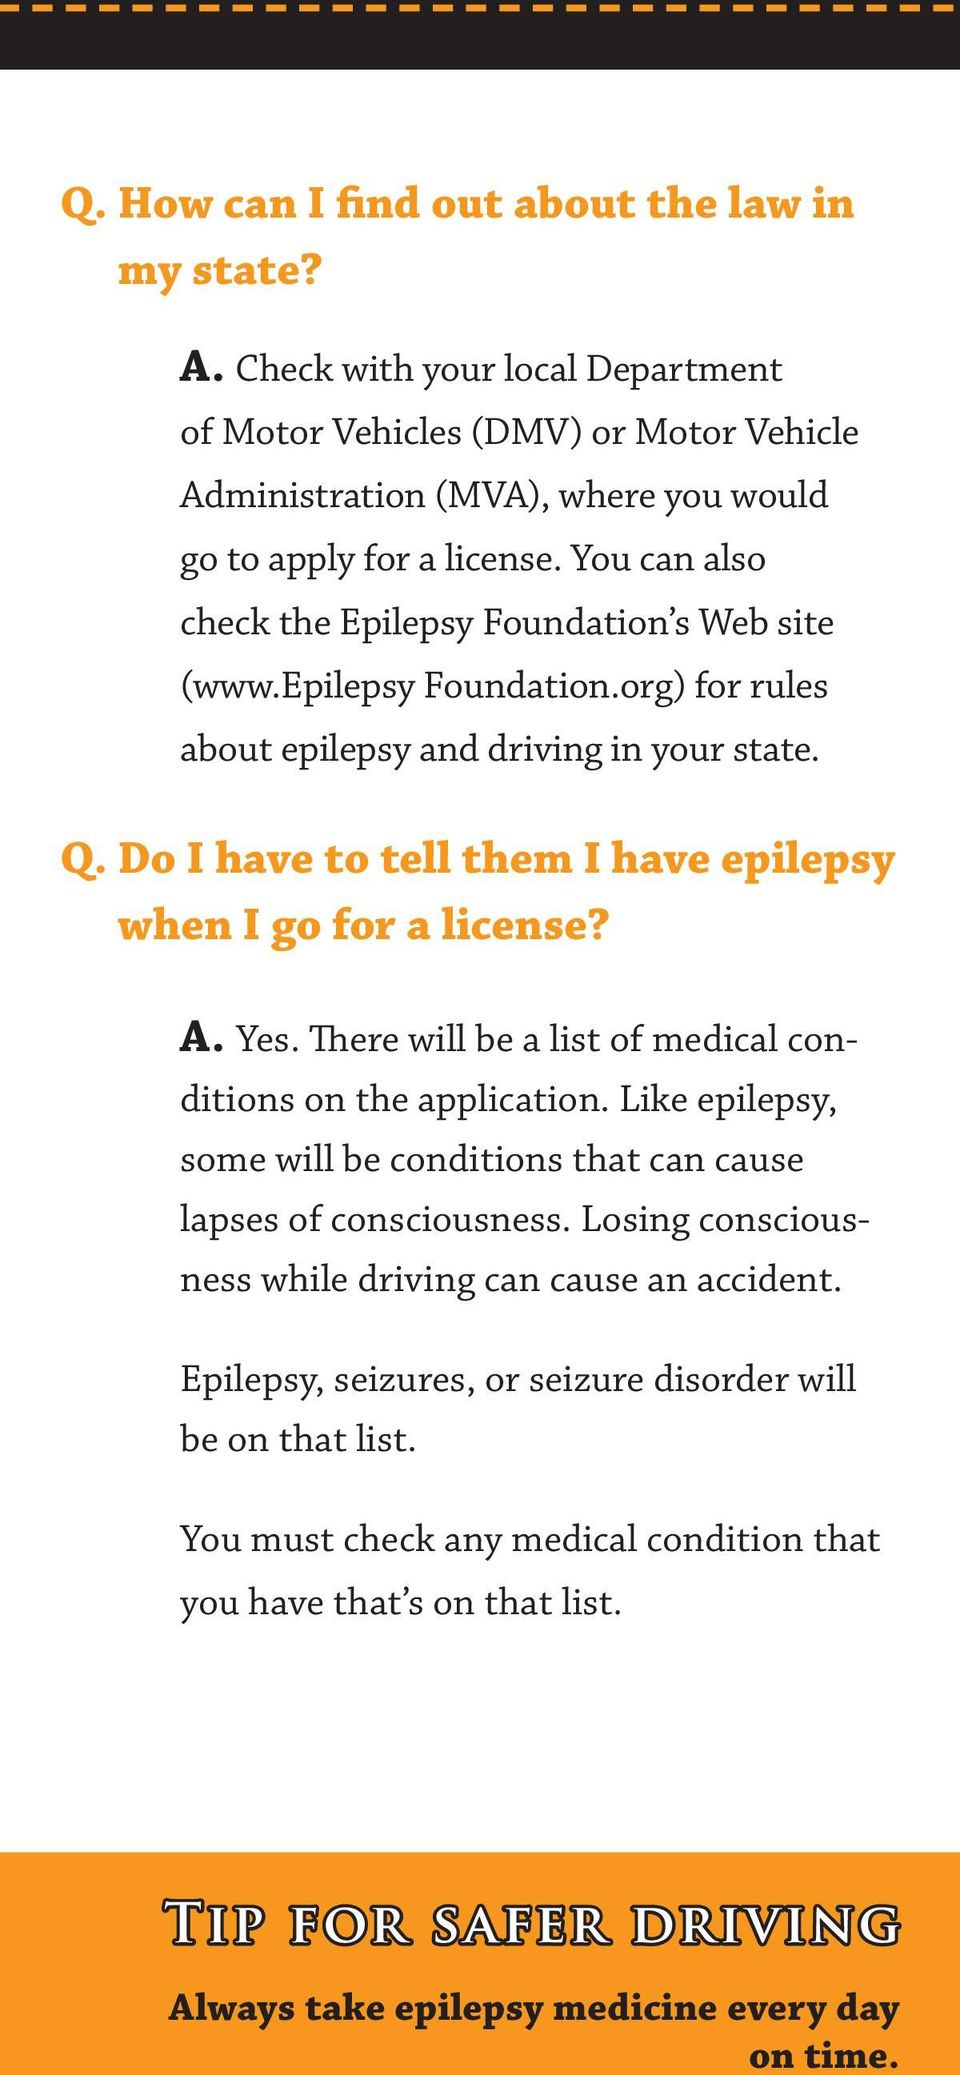 Do I have to tell them I have epilepsy when I go for a license? A. Yes. There will be a list of medical conditions on the application.